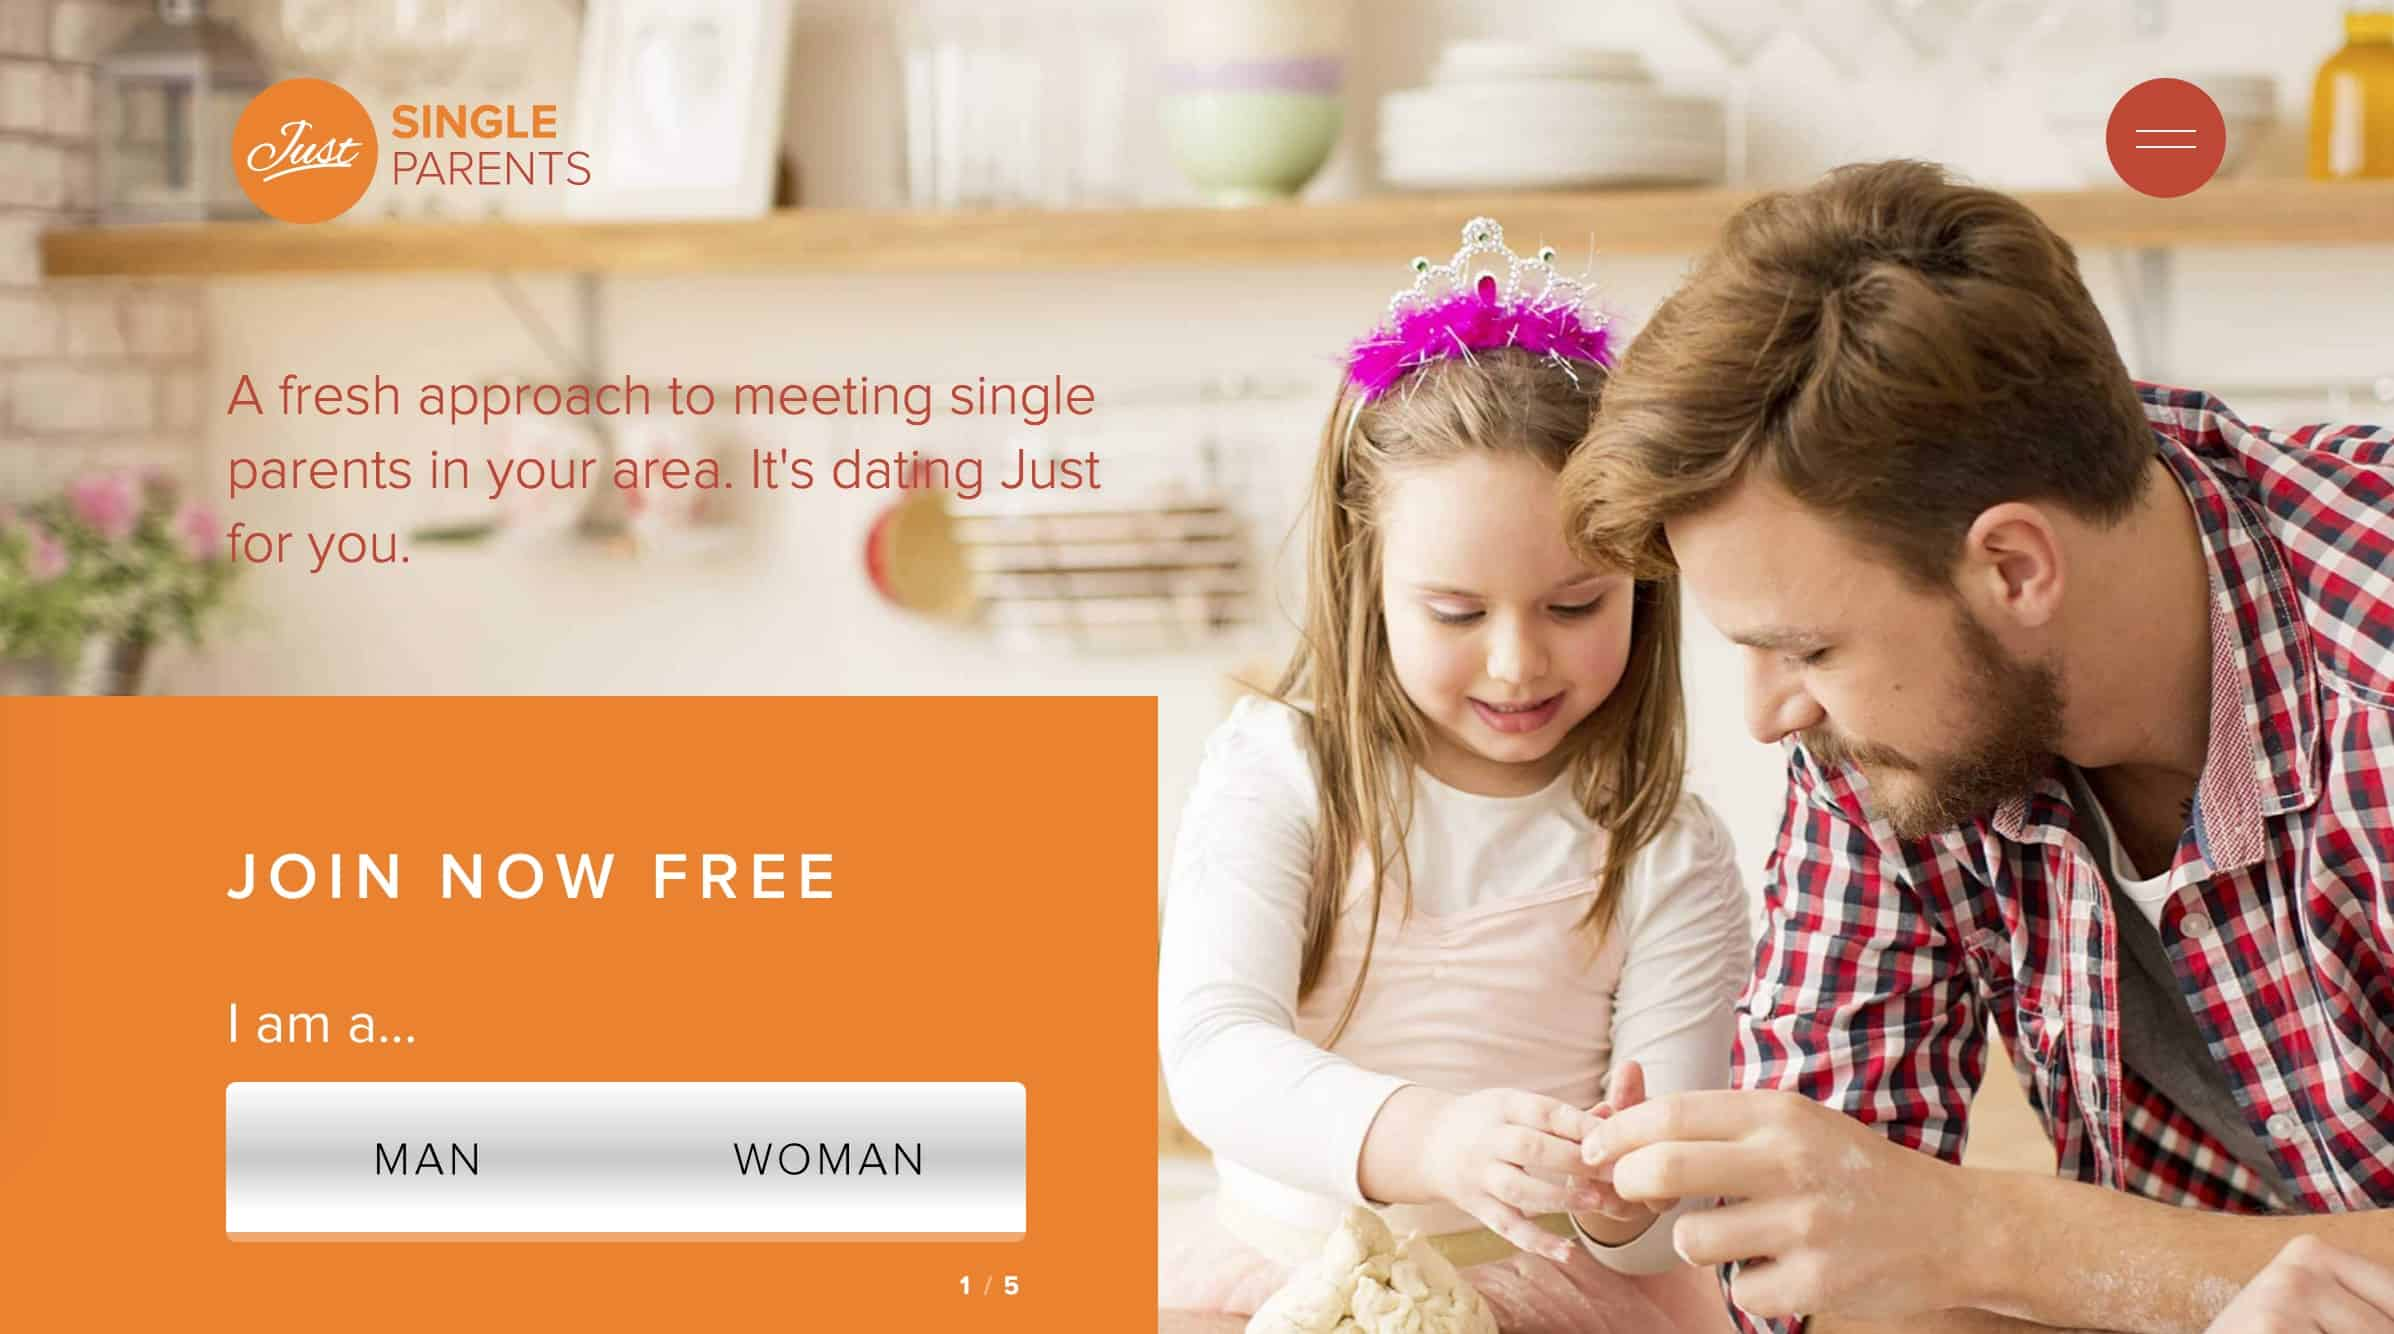 Best online dating site for single parents